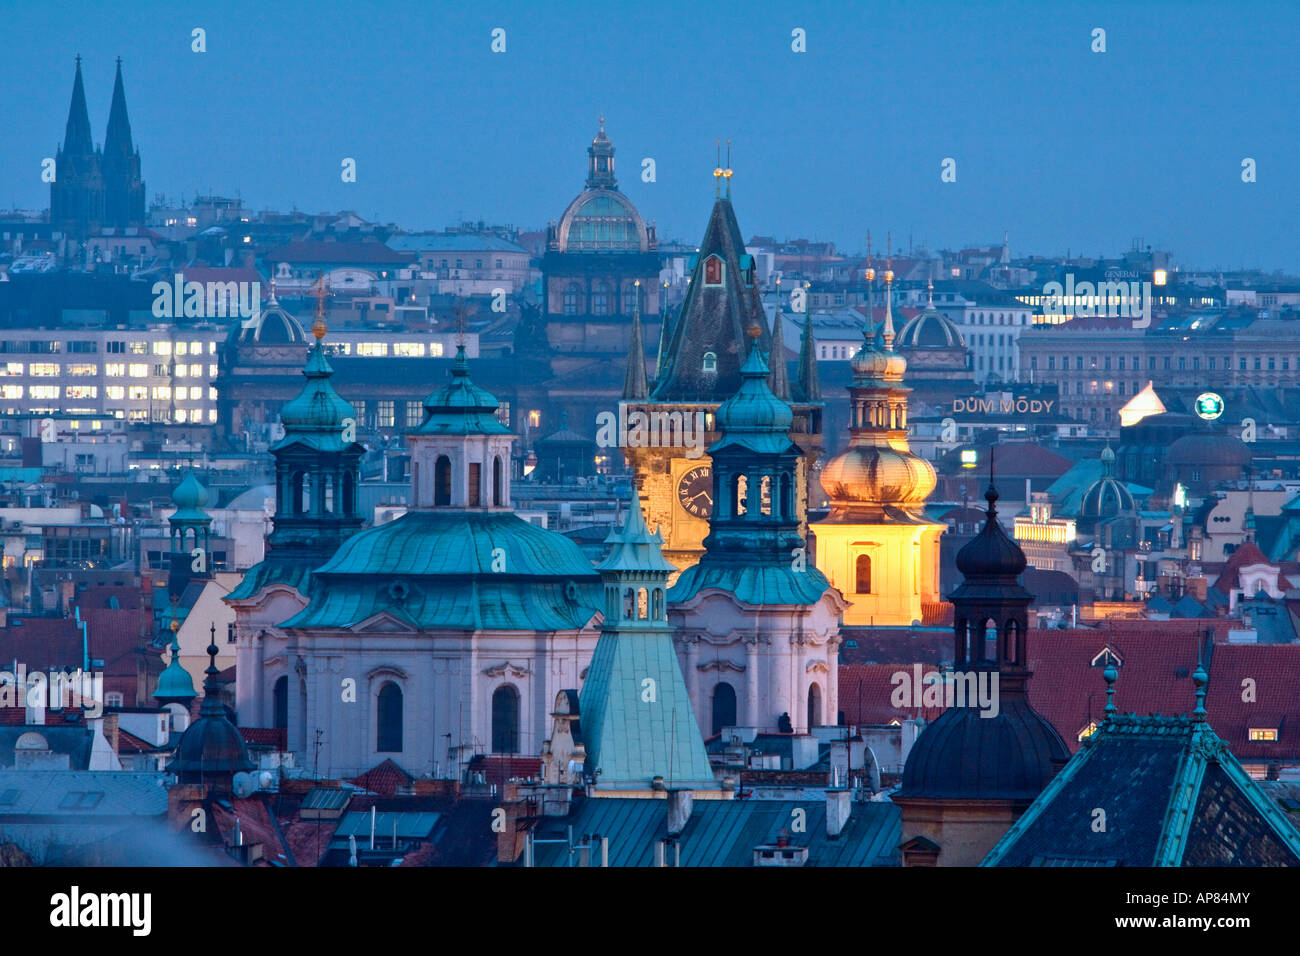 CZECH REPUBLIC PRAGUE SPIRES OF THE OLD TOWN - Stock Image